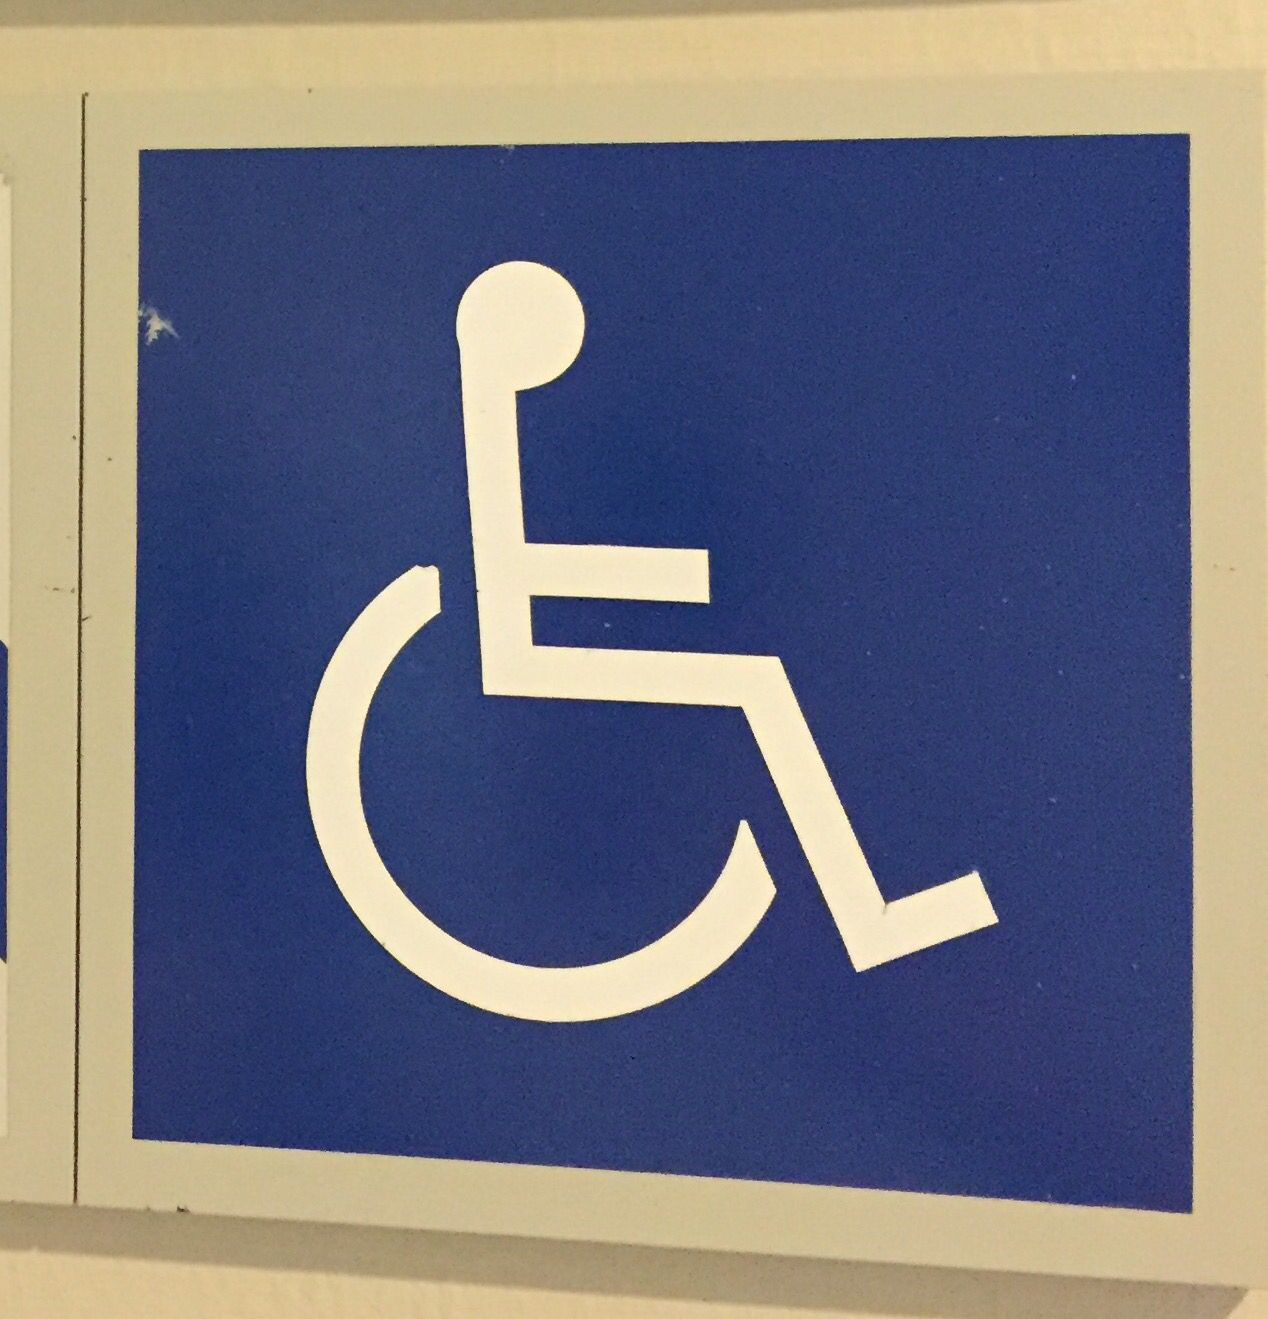 In this logo, the main focus, the handicapped sign, is the